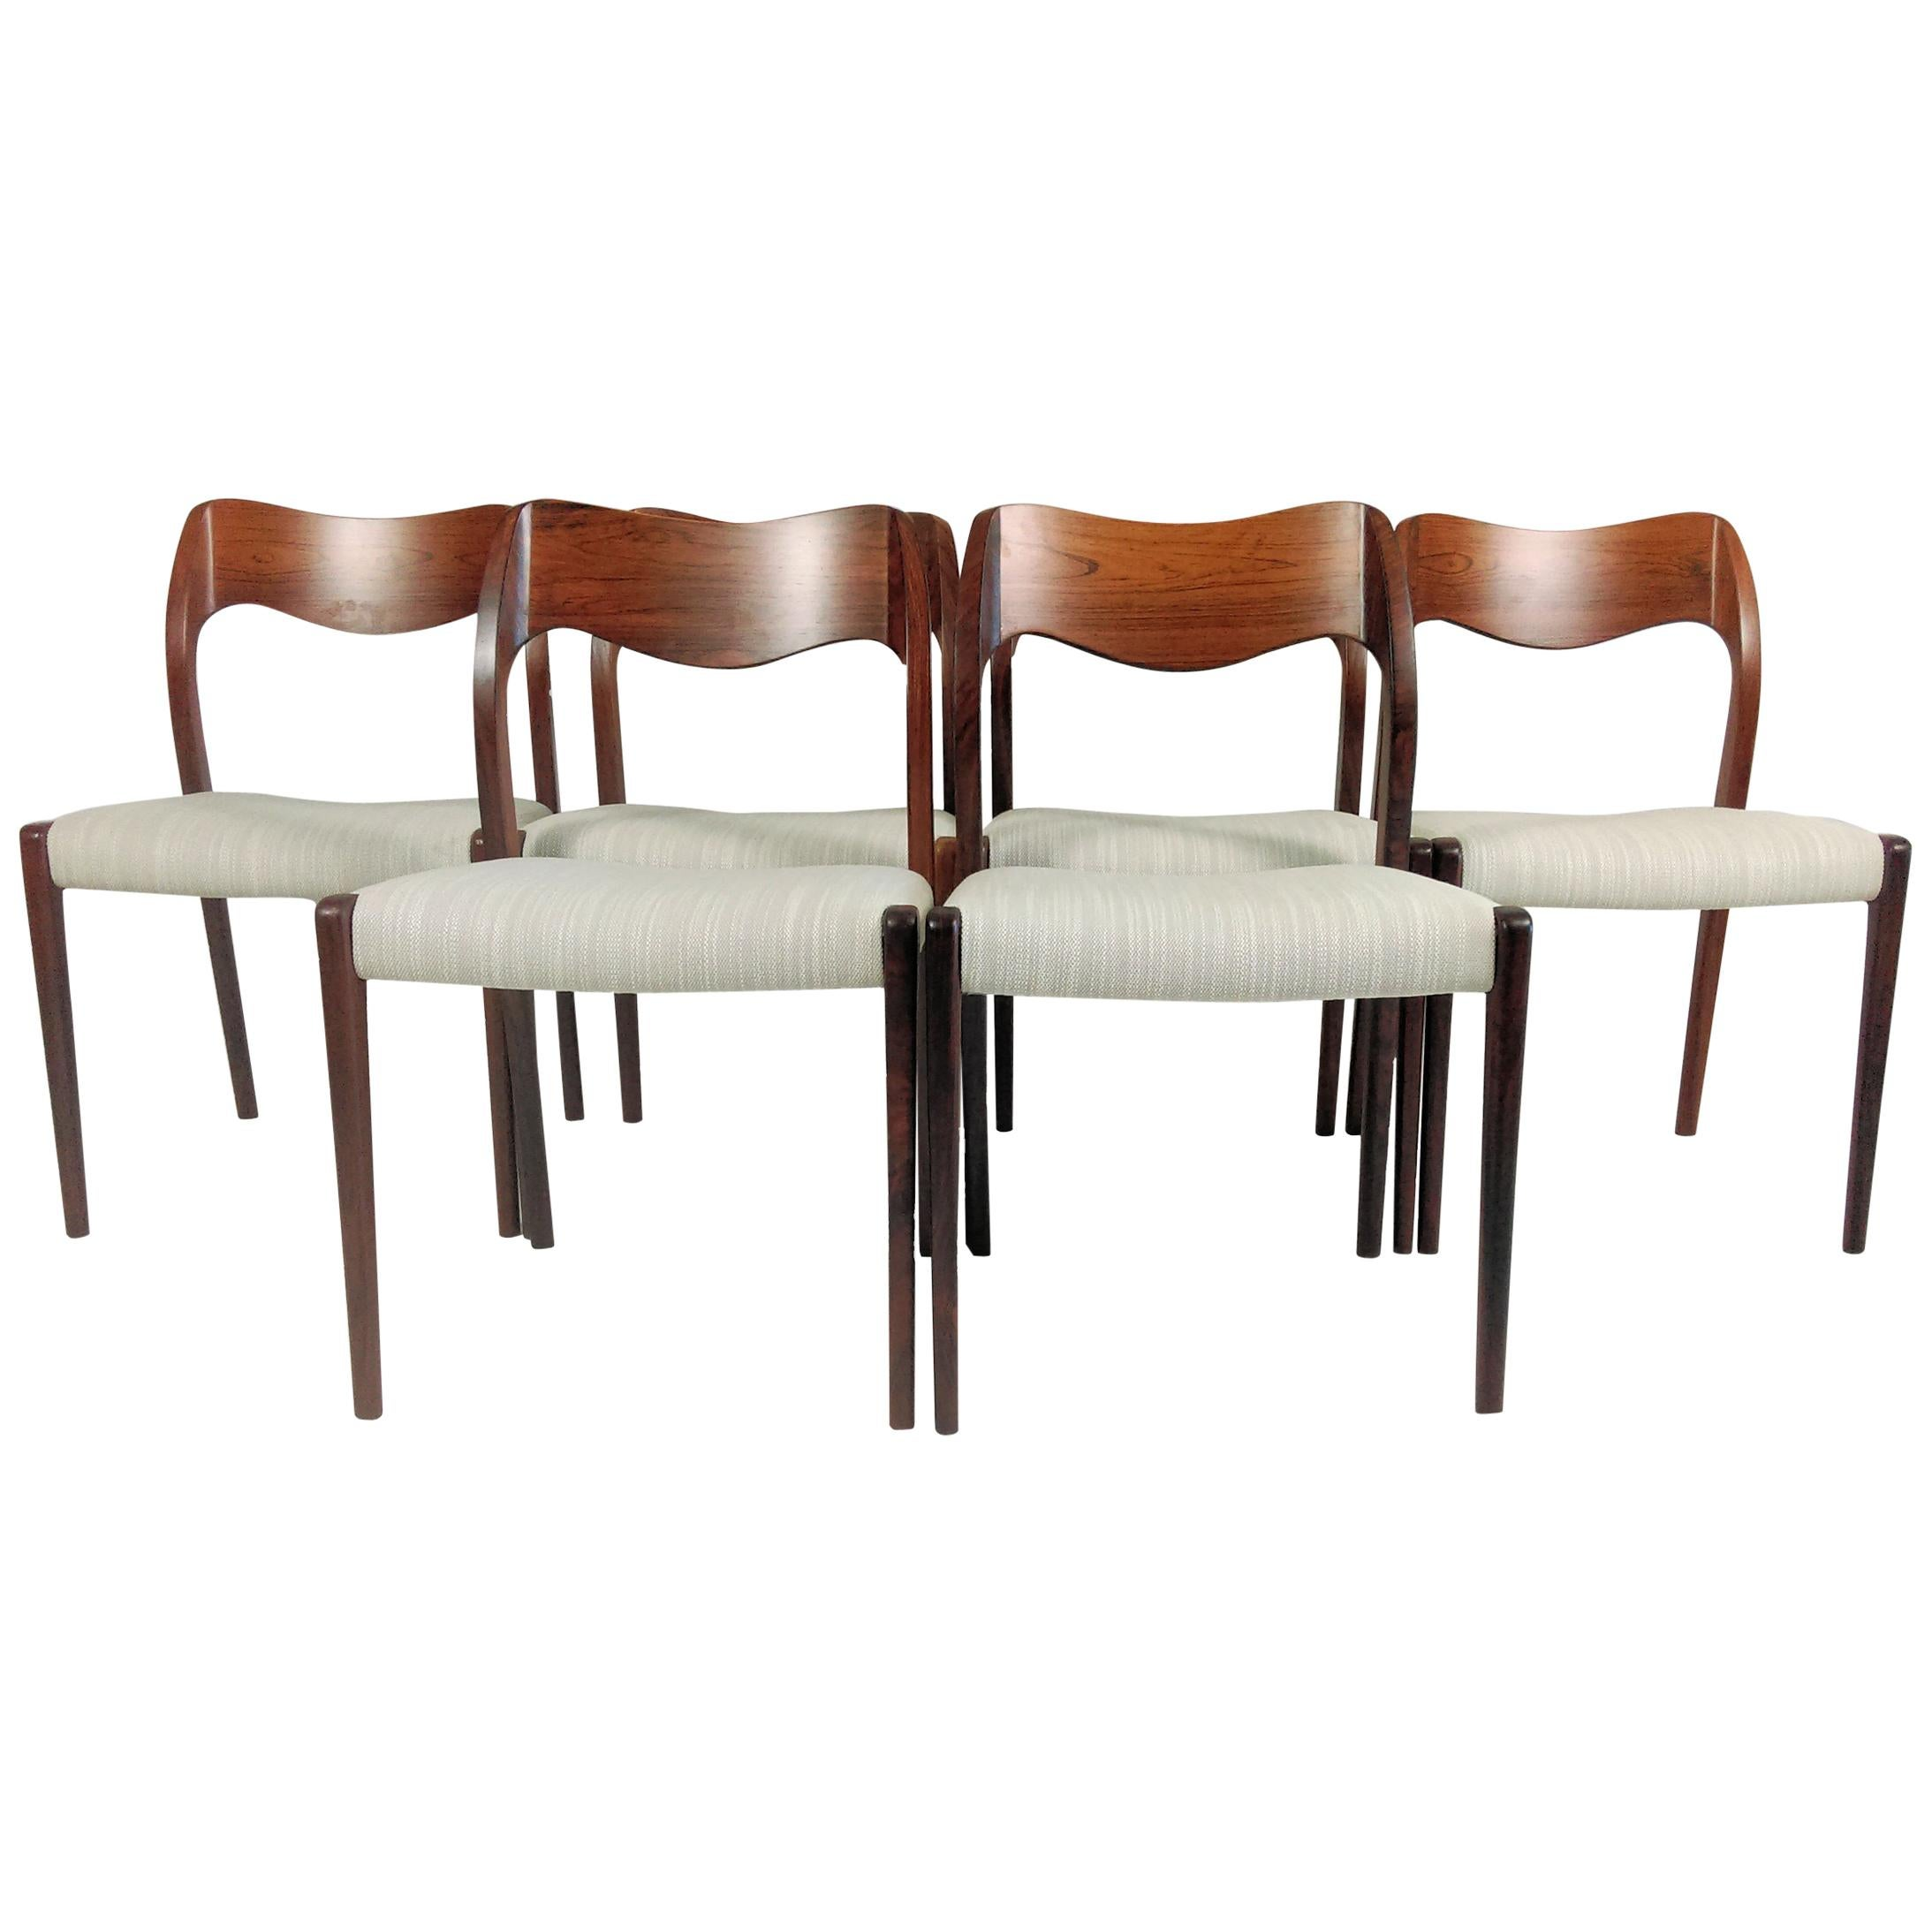 Niels Otto Møller Six Refinished Rosewood Dining Chairs, Inc. Reupholstery